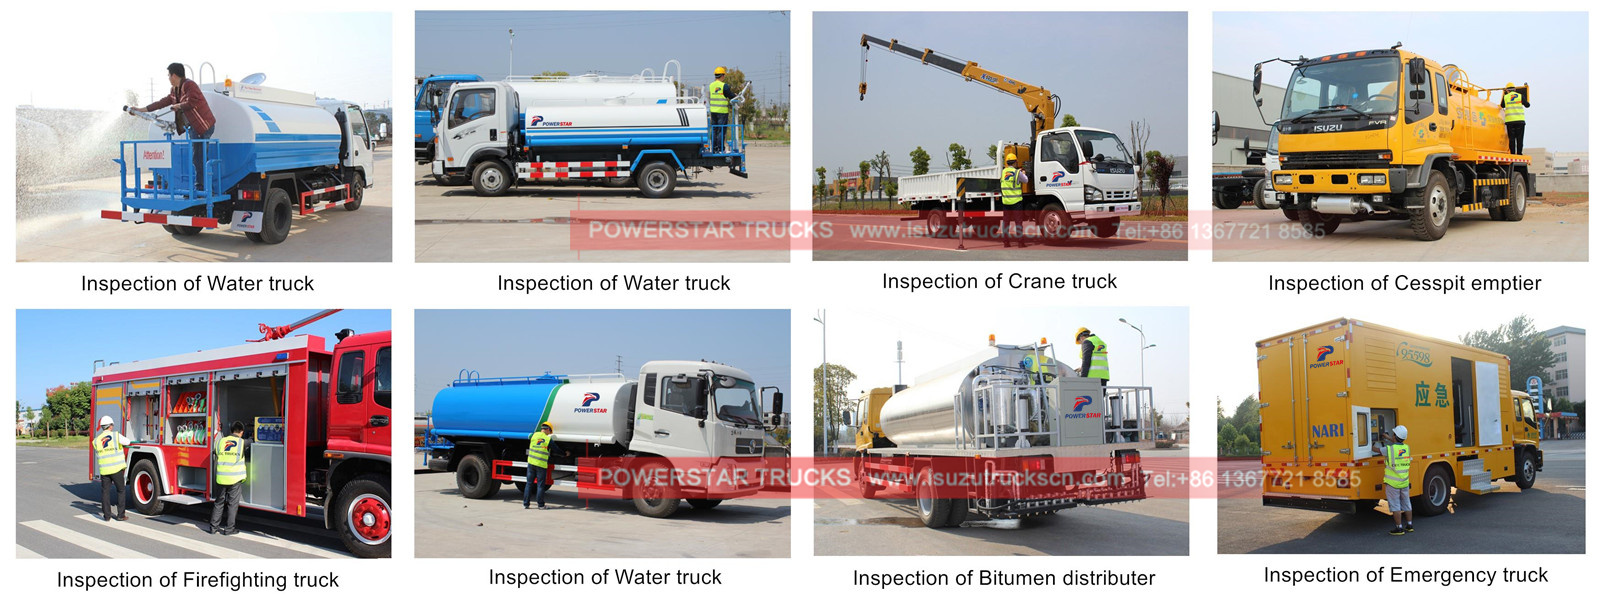 customer build Isuzu tanker trucks for inspectioin and training